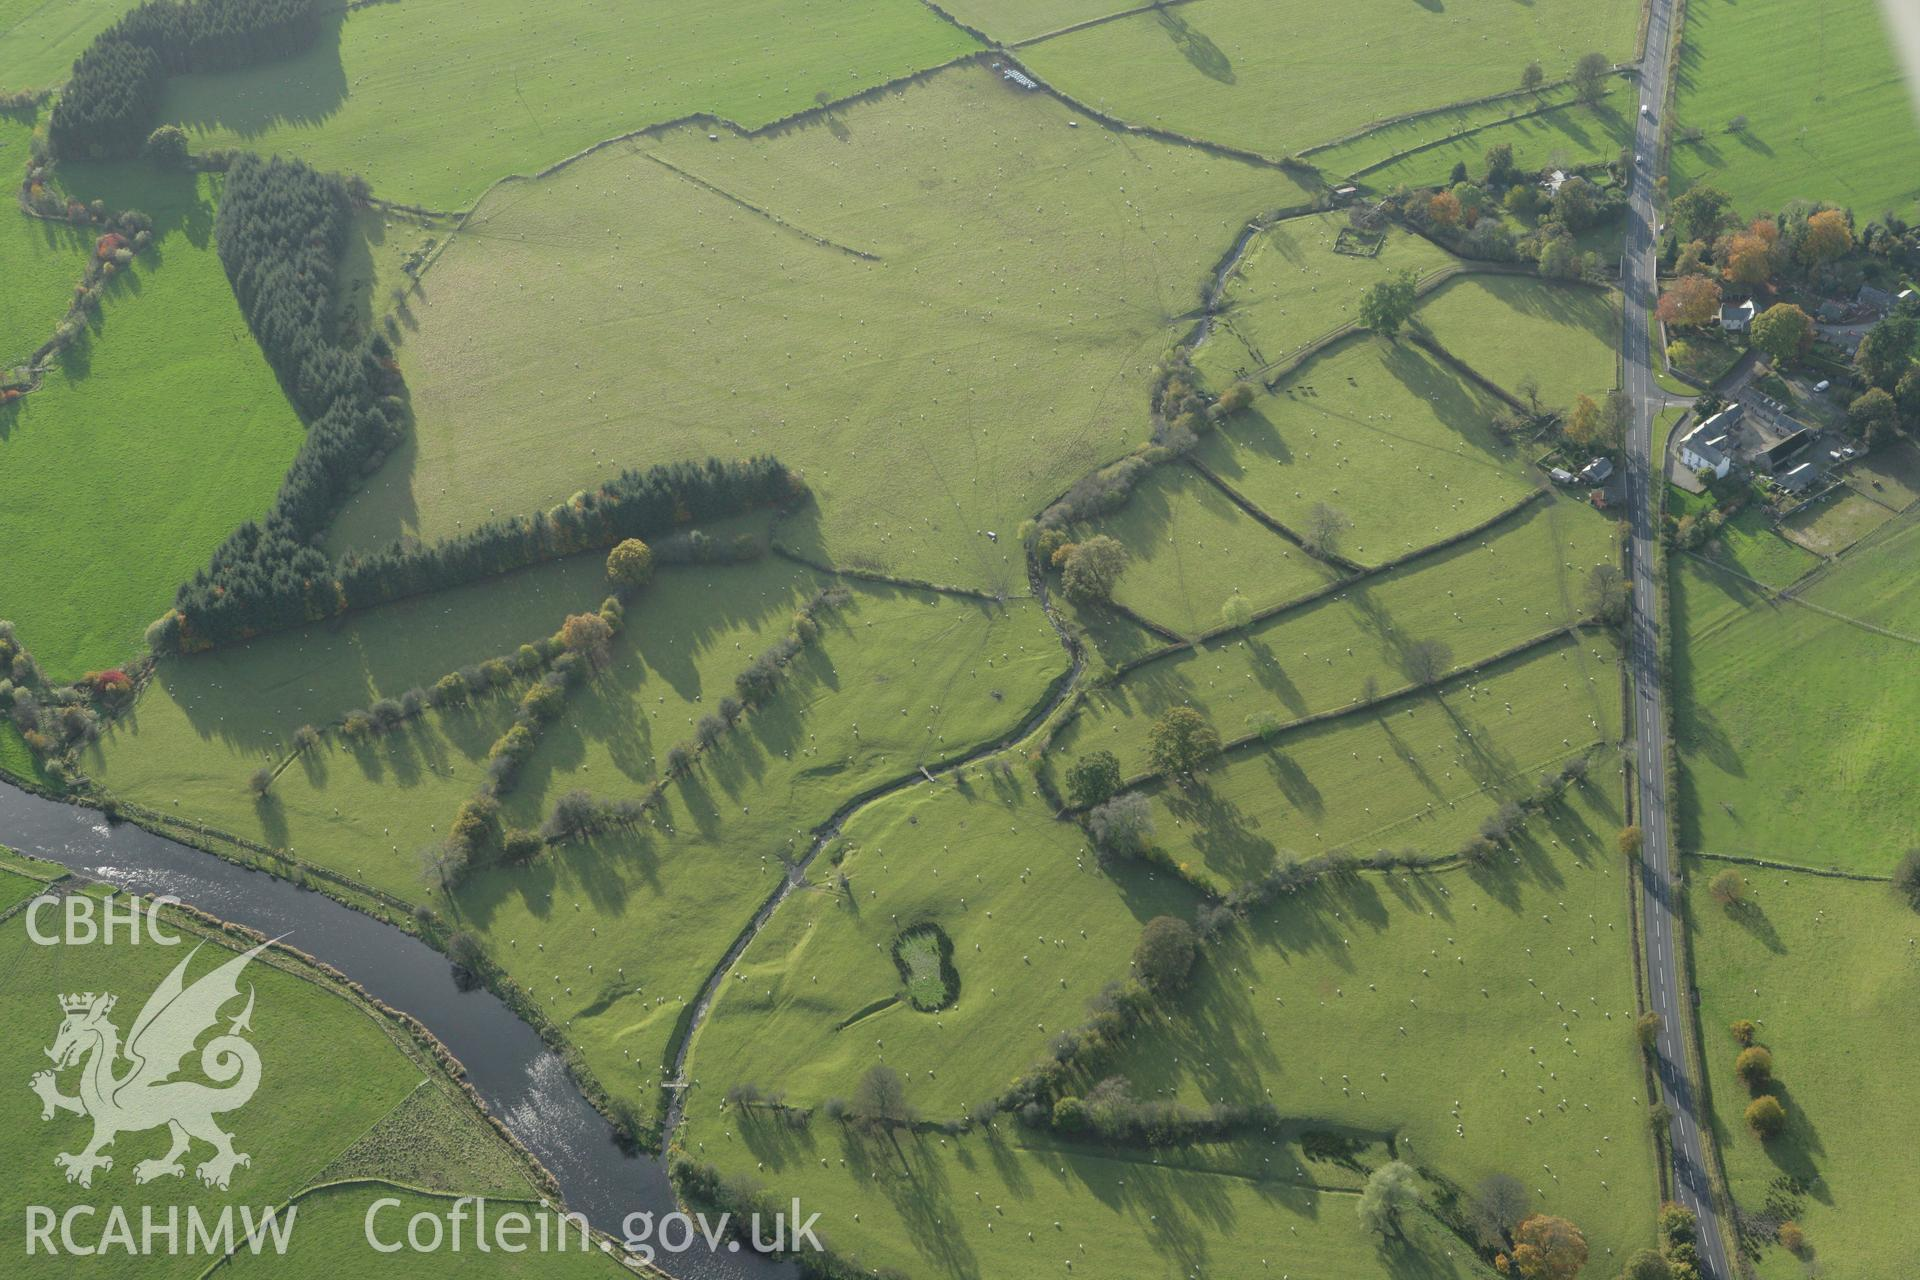 RCAHMW colour oblique photograph of Llanfor Roman fort (site of),. Taken by Toby Driver on 30/10/2007.